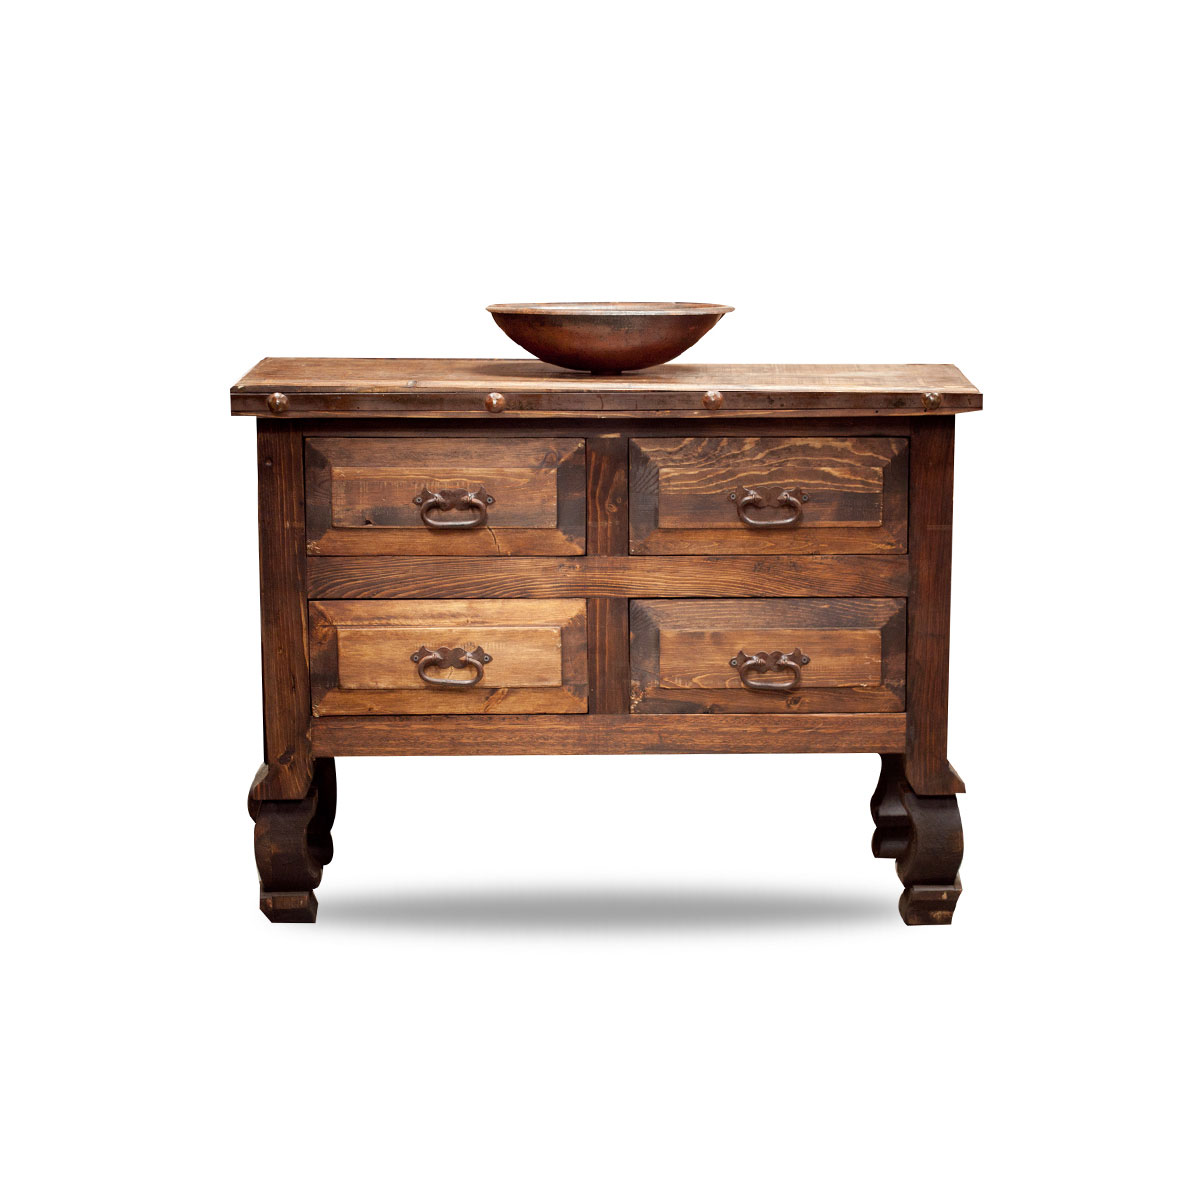 Order small bathroom vanity with yugo legs and 4 drawers - Small bathroom vanity with drawers ...